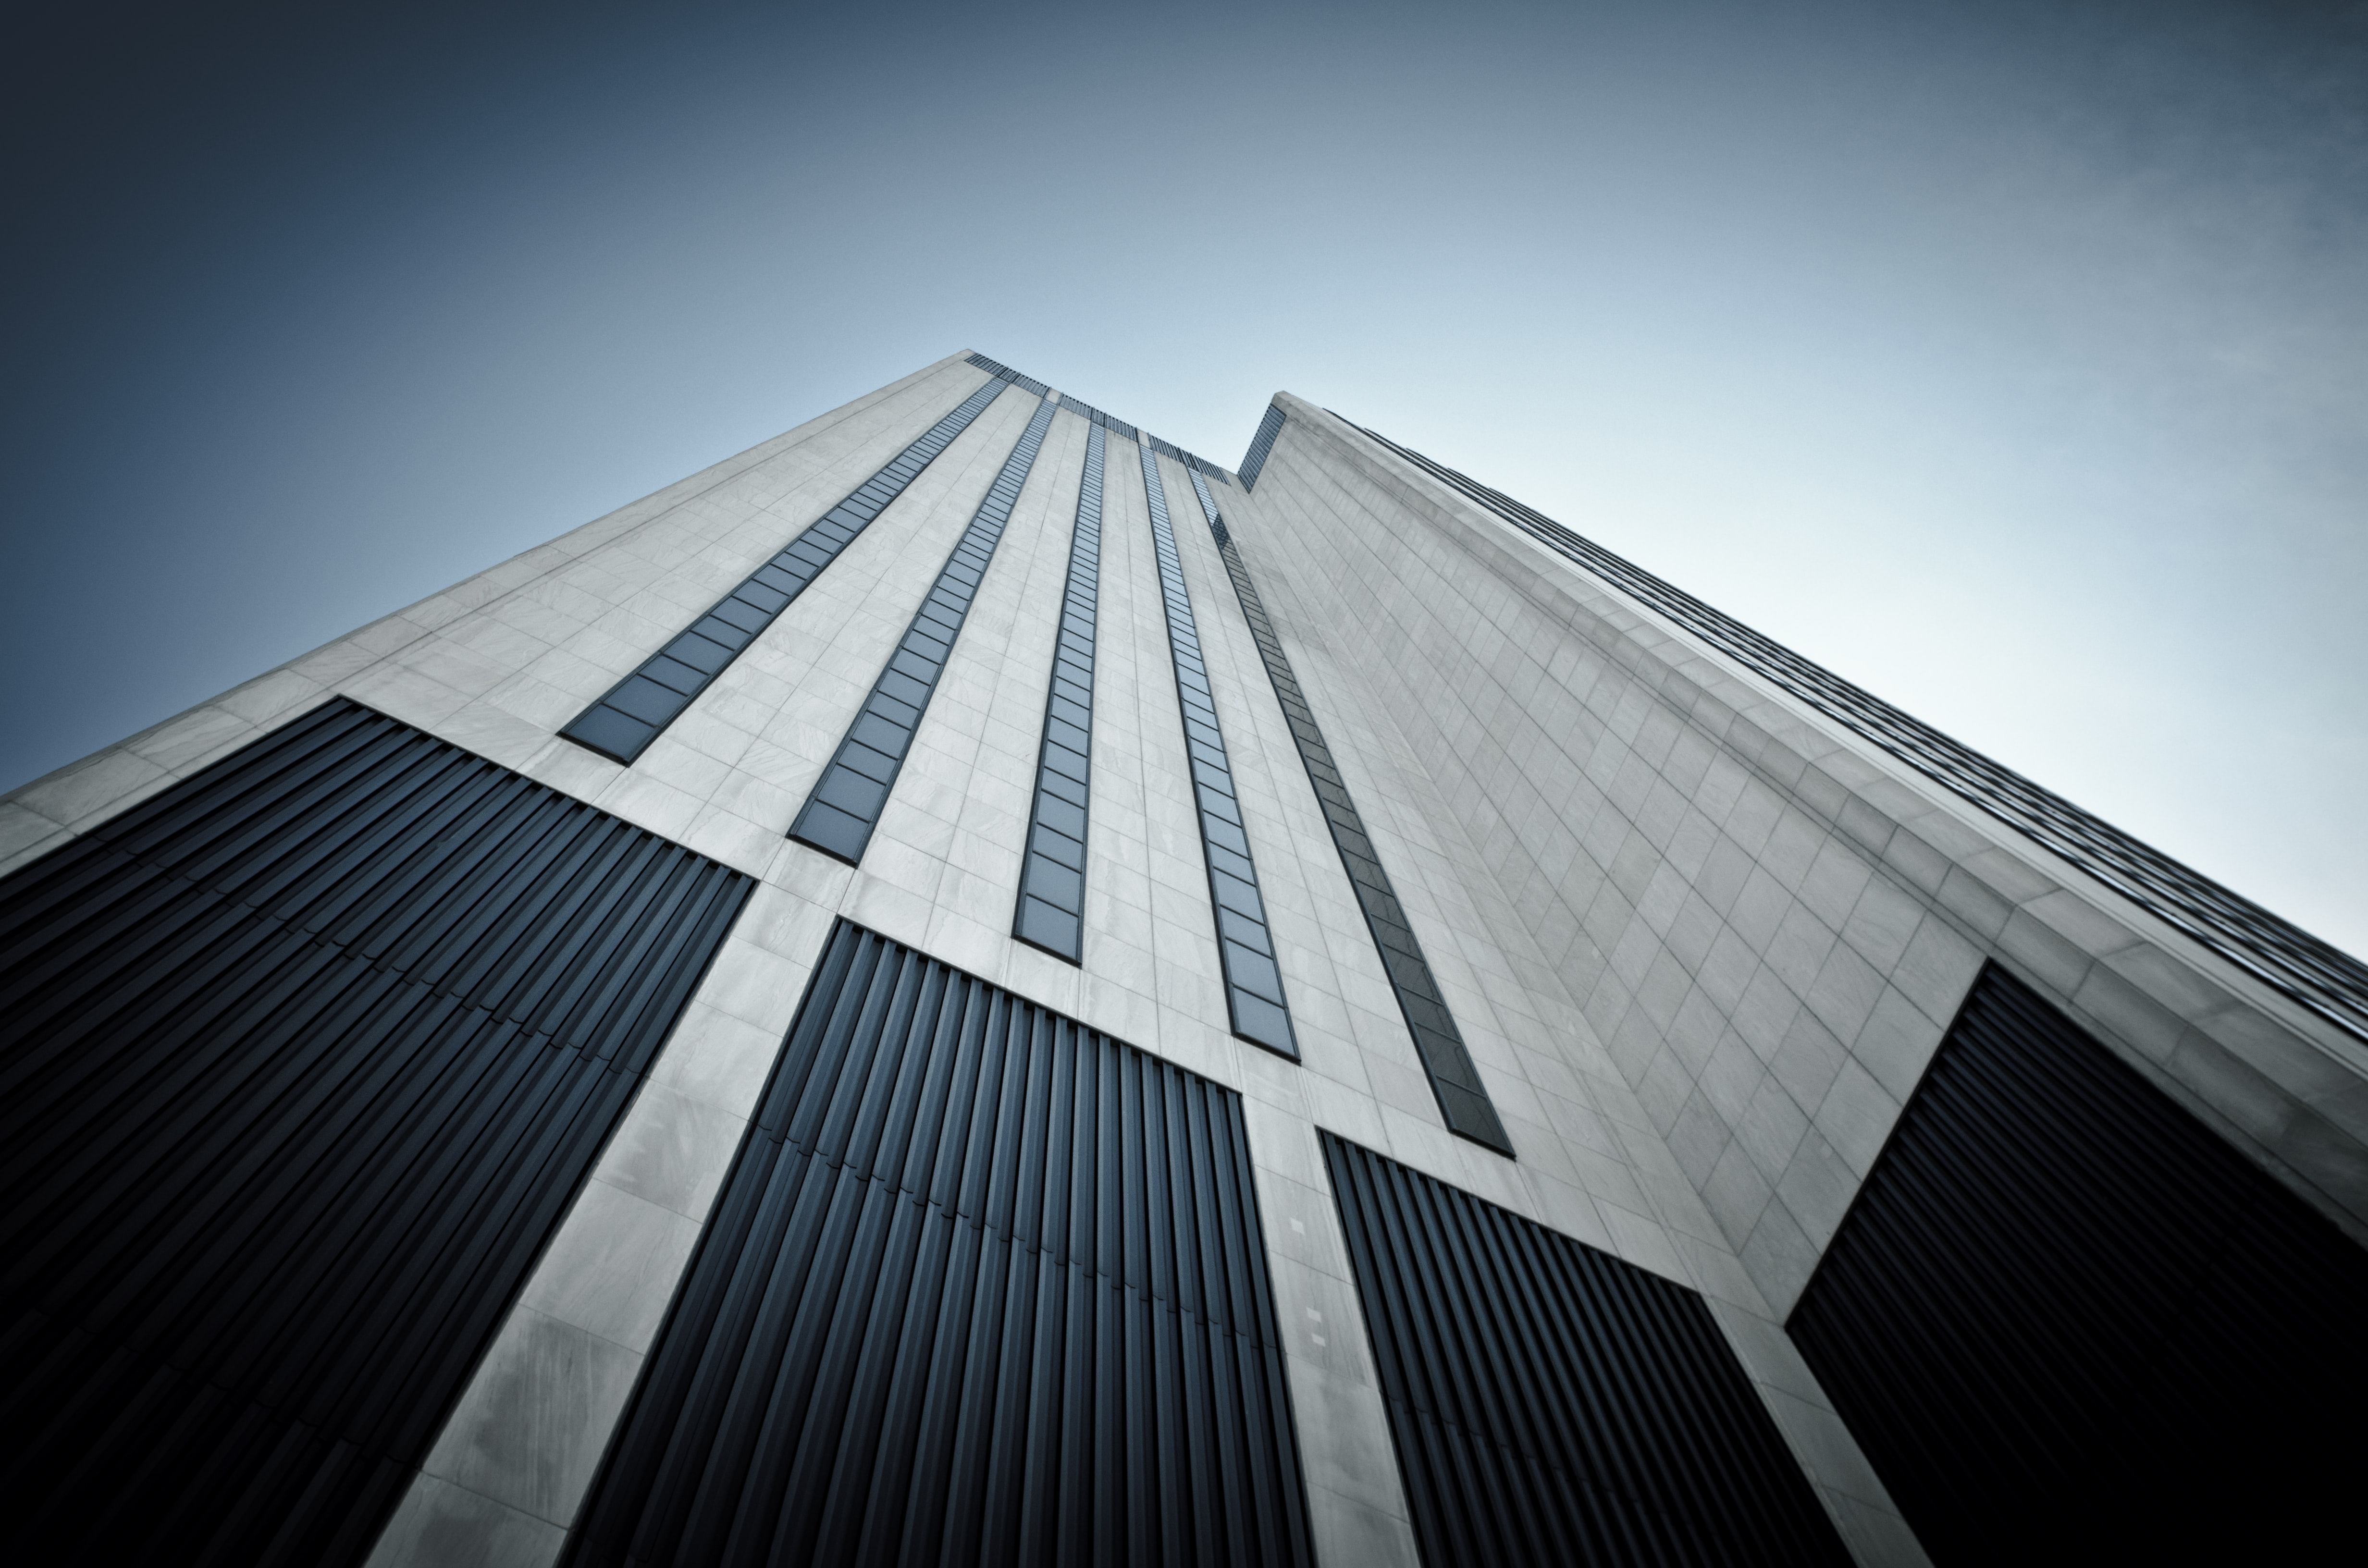 A low-angle shot of a white tiled skyscraper facade with small windows